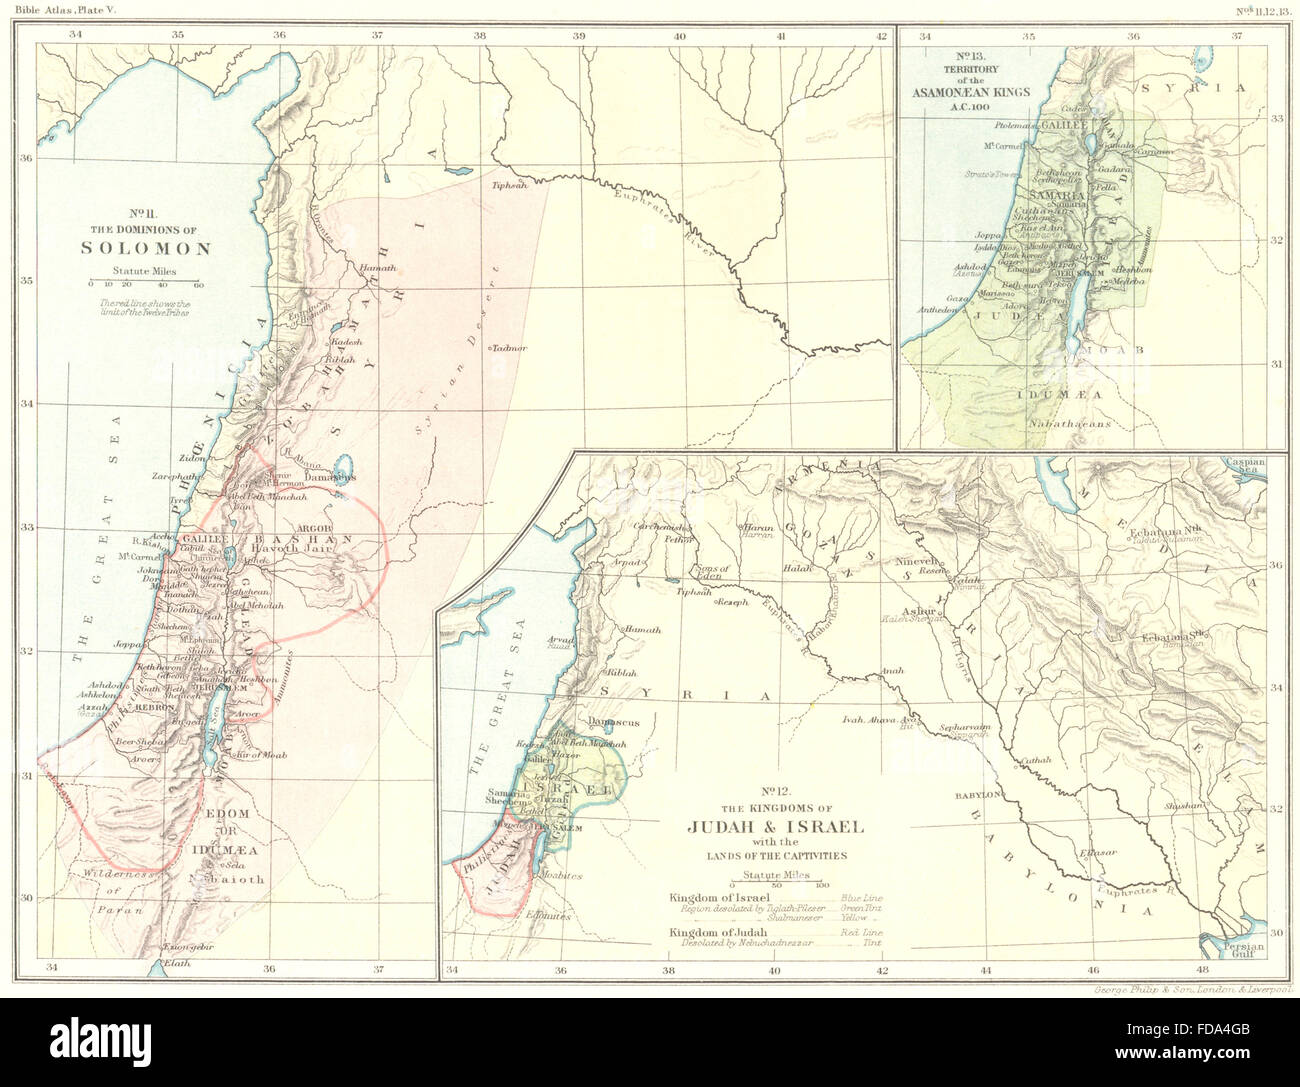 HOLY LAND: Dominions Solomon; kingdom Judah Israel; Asmonaean Kings on lost tribes of israel map, kingdom of kush map, israel on world map, solomon's kingdom map, israel political map, spain and portugal peninsula map, roman empire map, divided kingdom map, tribal allotments of israel map, babylonian captivity map, philistia map, kingdoms around israel map, israel holy land map, empire of japan map, tribes of israel divided map, ptolemaic kingdom map, union of soviet socialist republics map, new kingdom of egypt map, kingdom of david map, assyrian empire map,